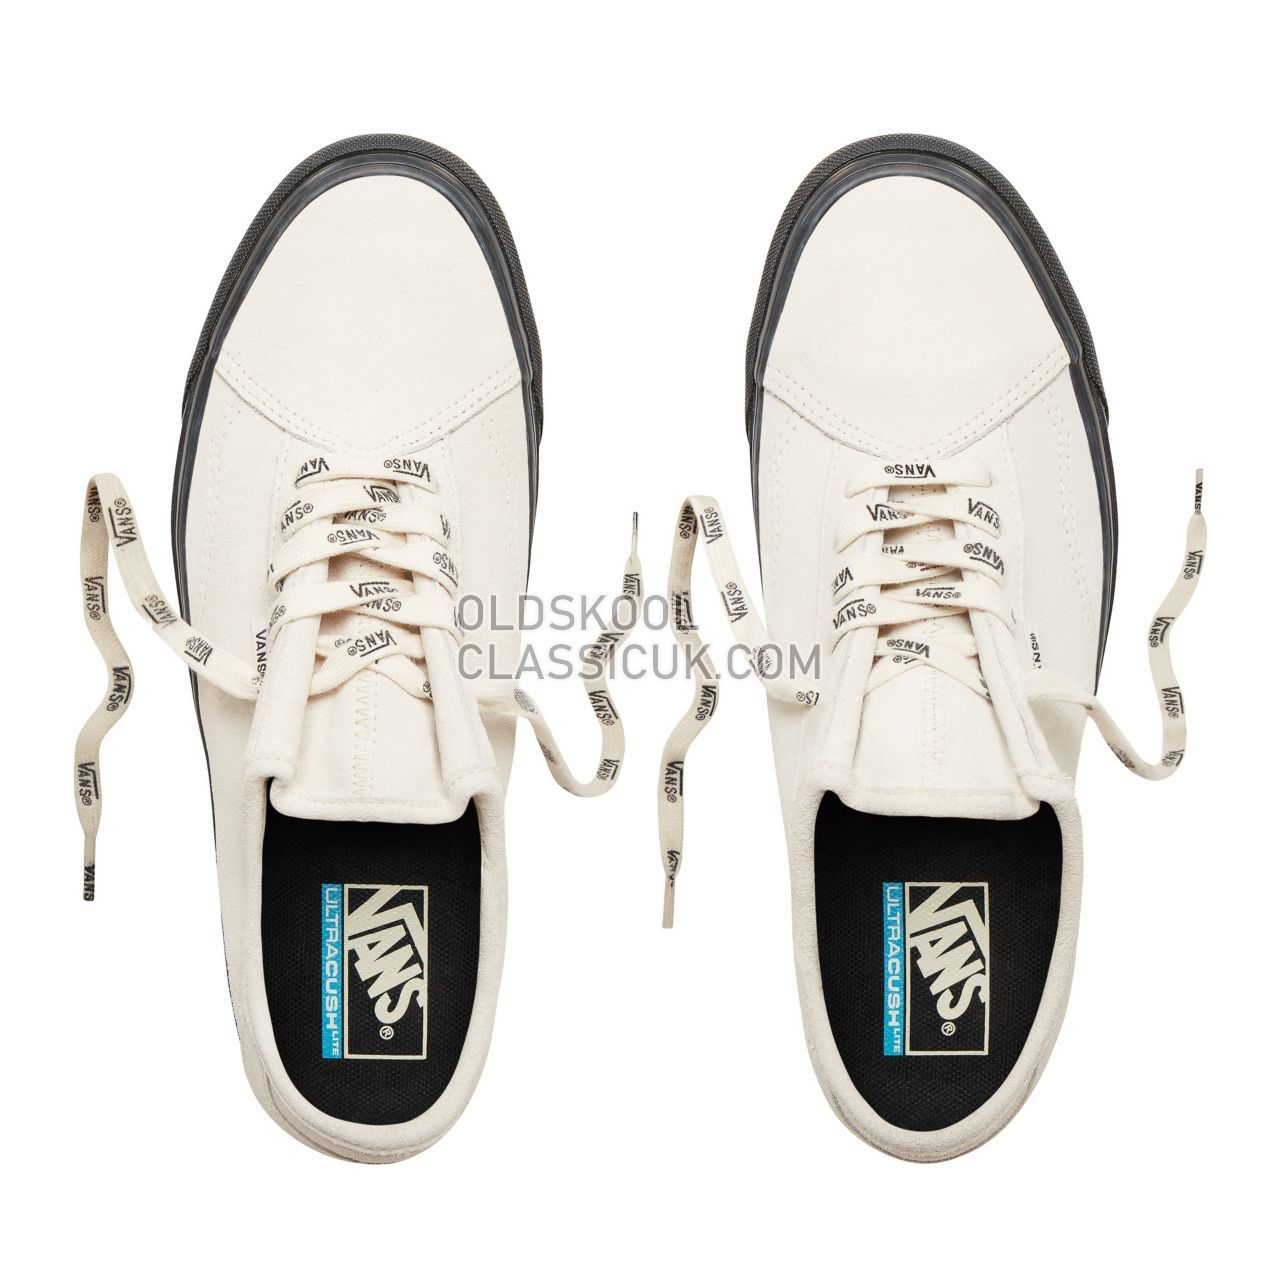 Vans Call Out Diamo Ni Sneakers Mens (Call Out) Marshmallow/Black VN0A3TKDUMC Shoes